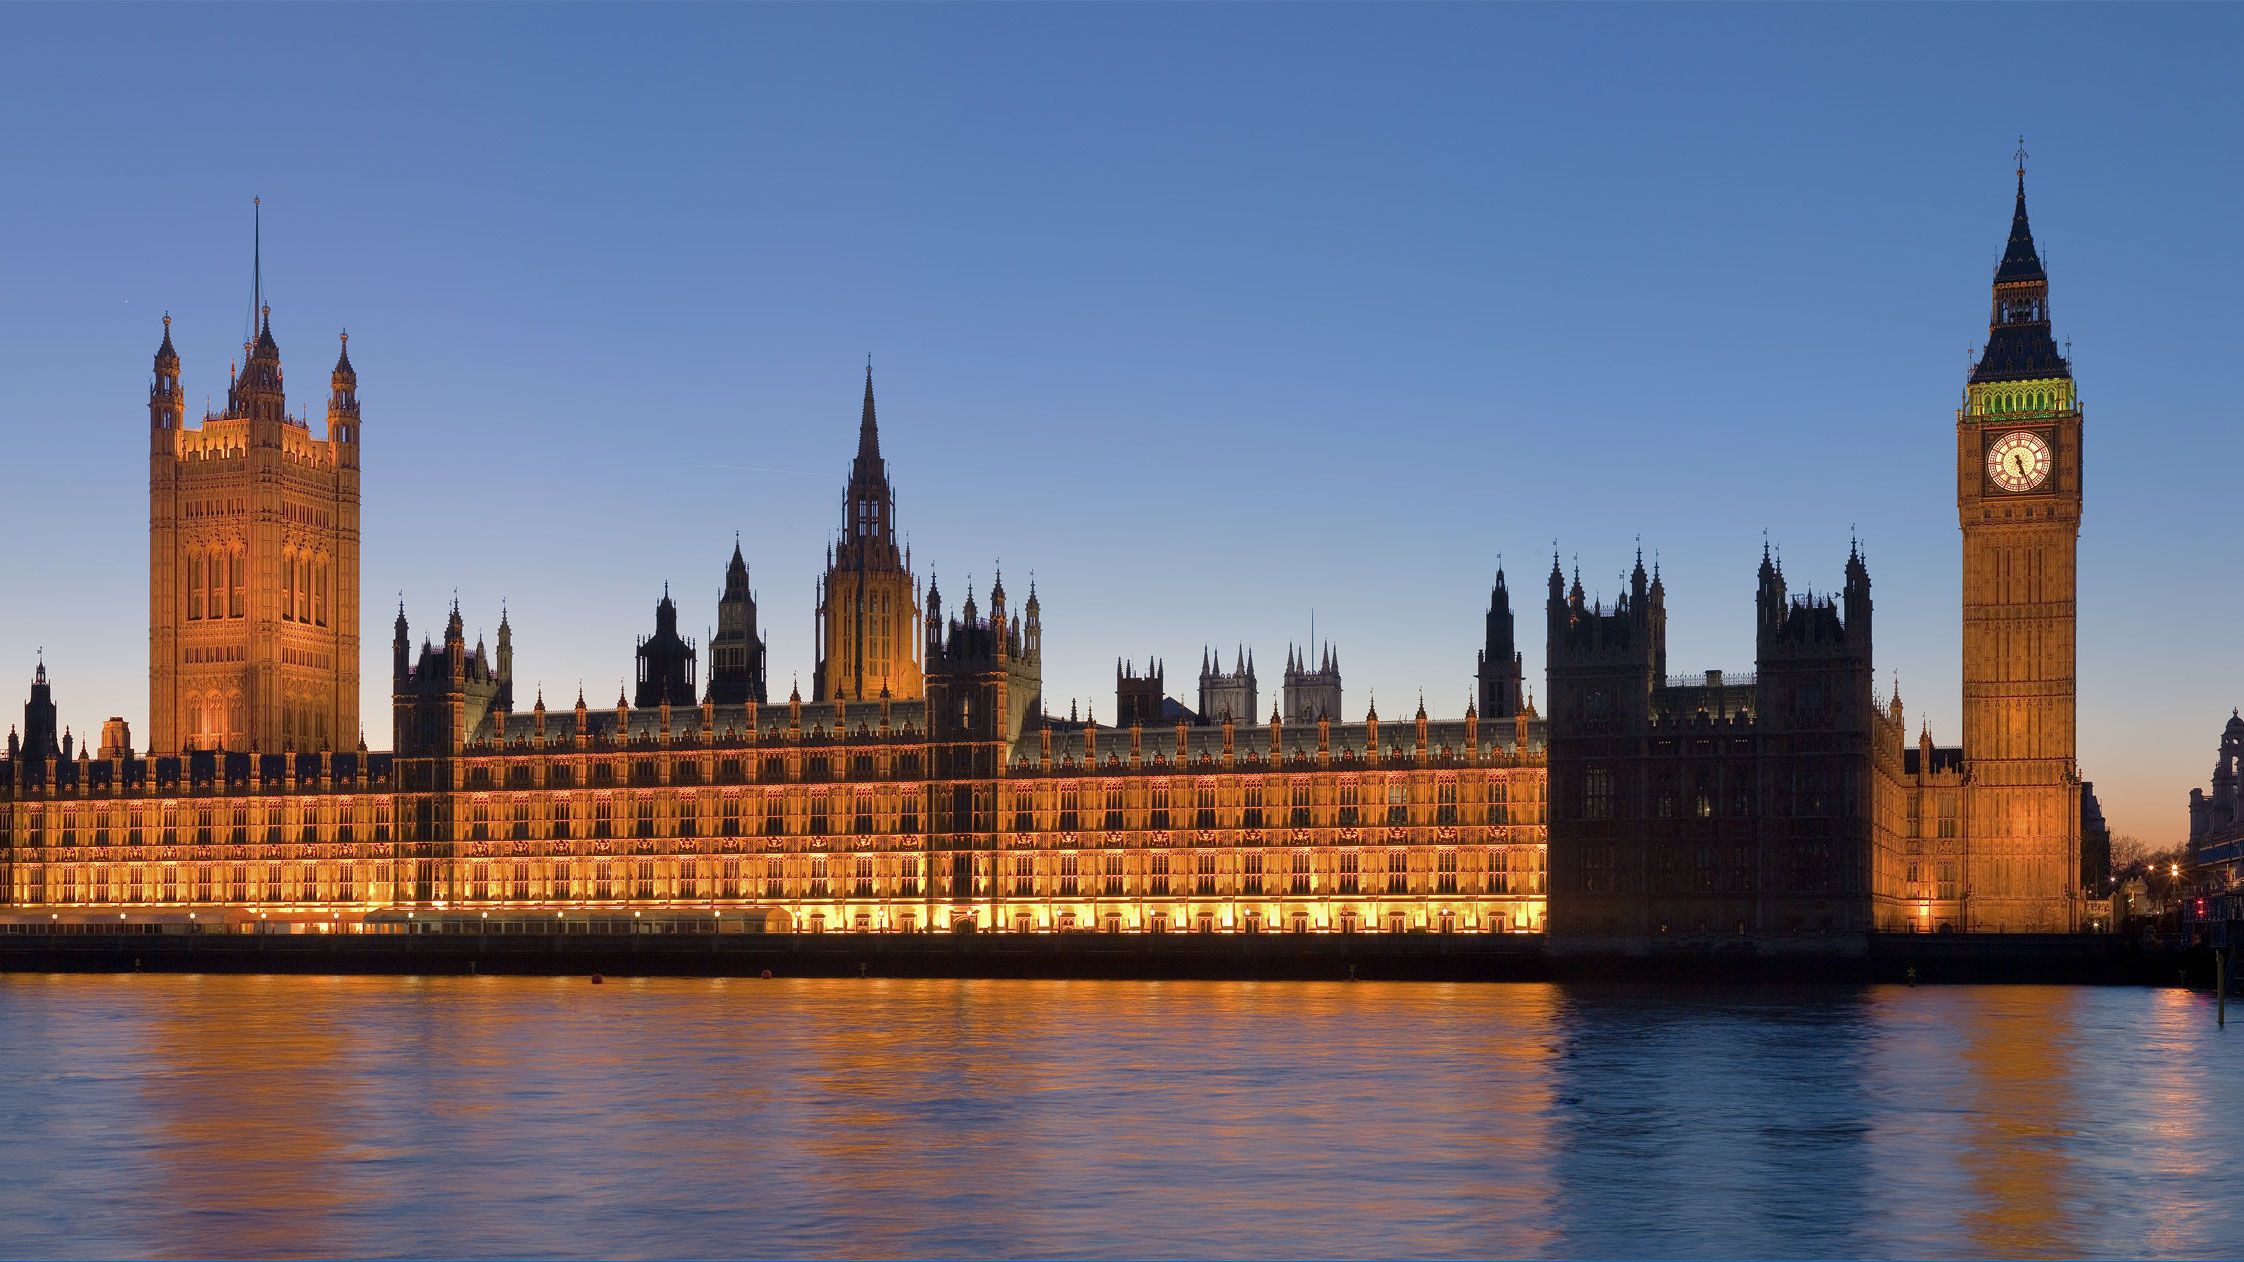 Houses-of-Parliment